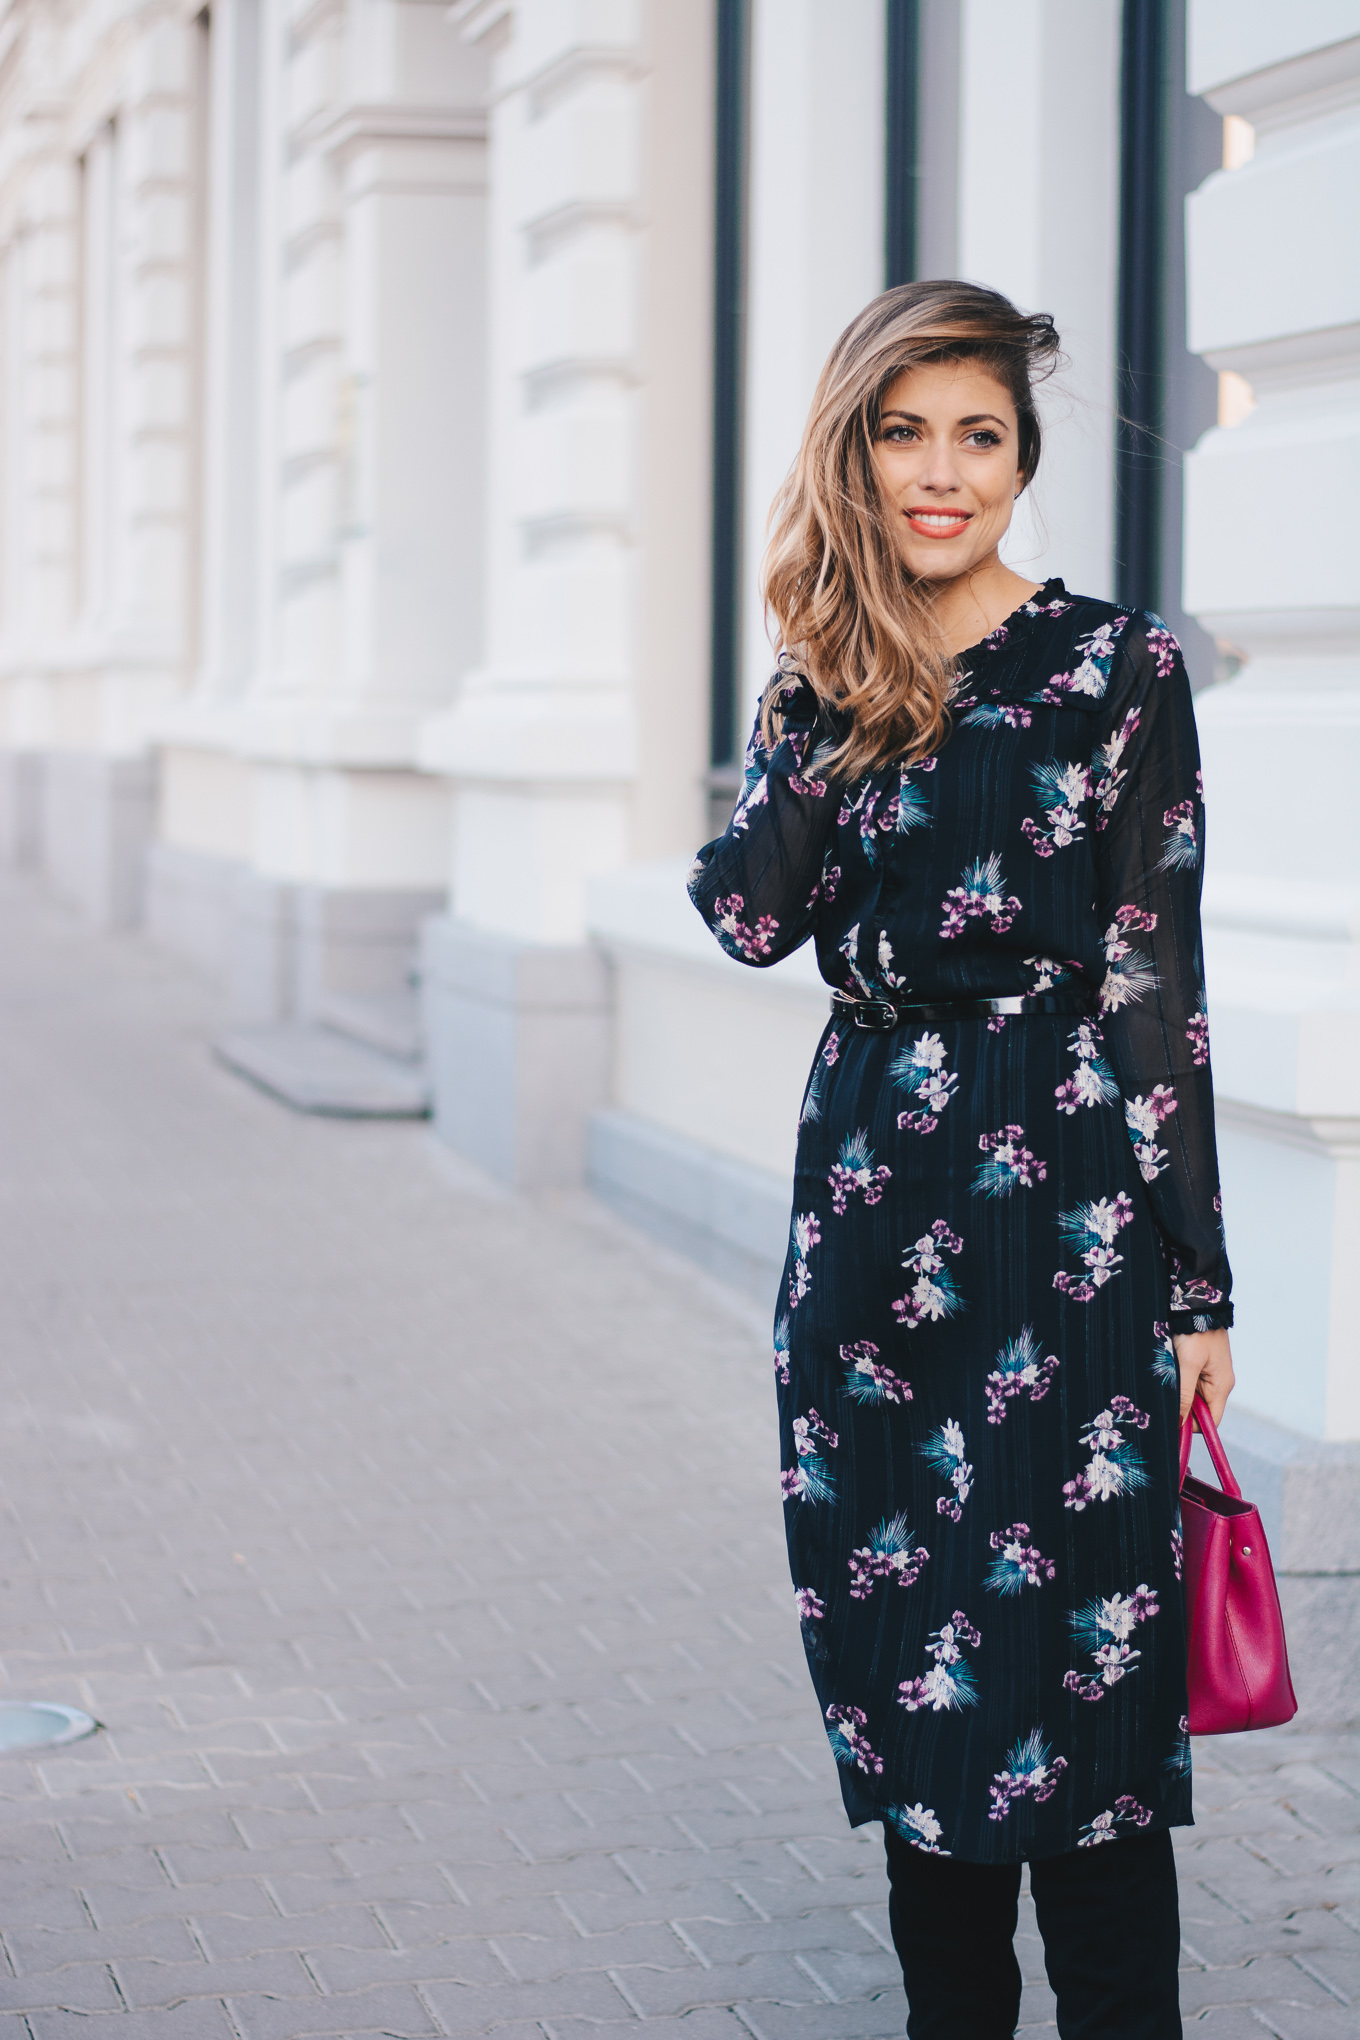 Tom Tailor blogger floral dress